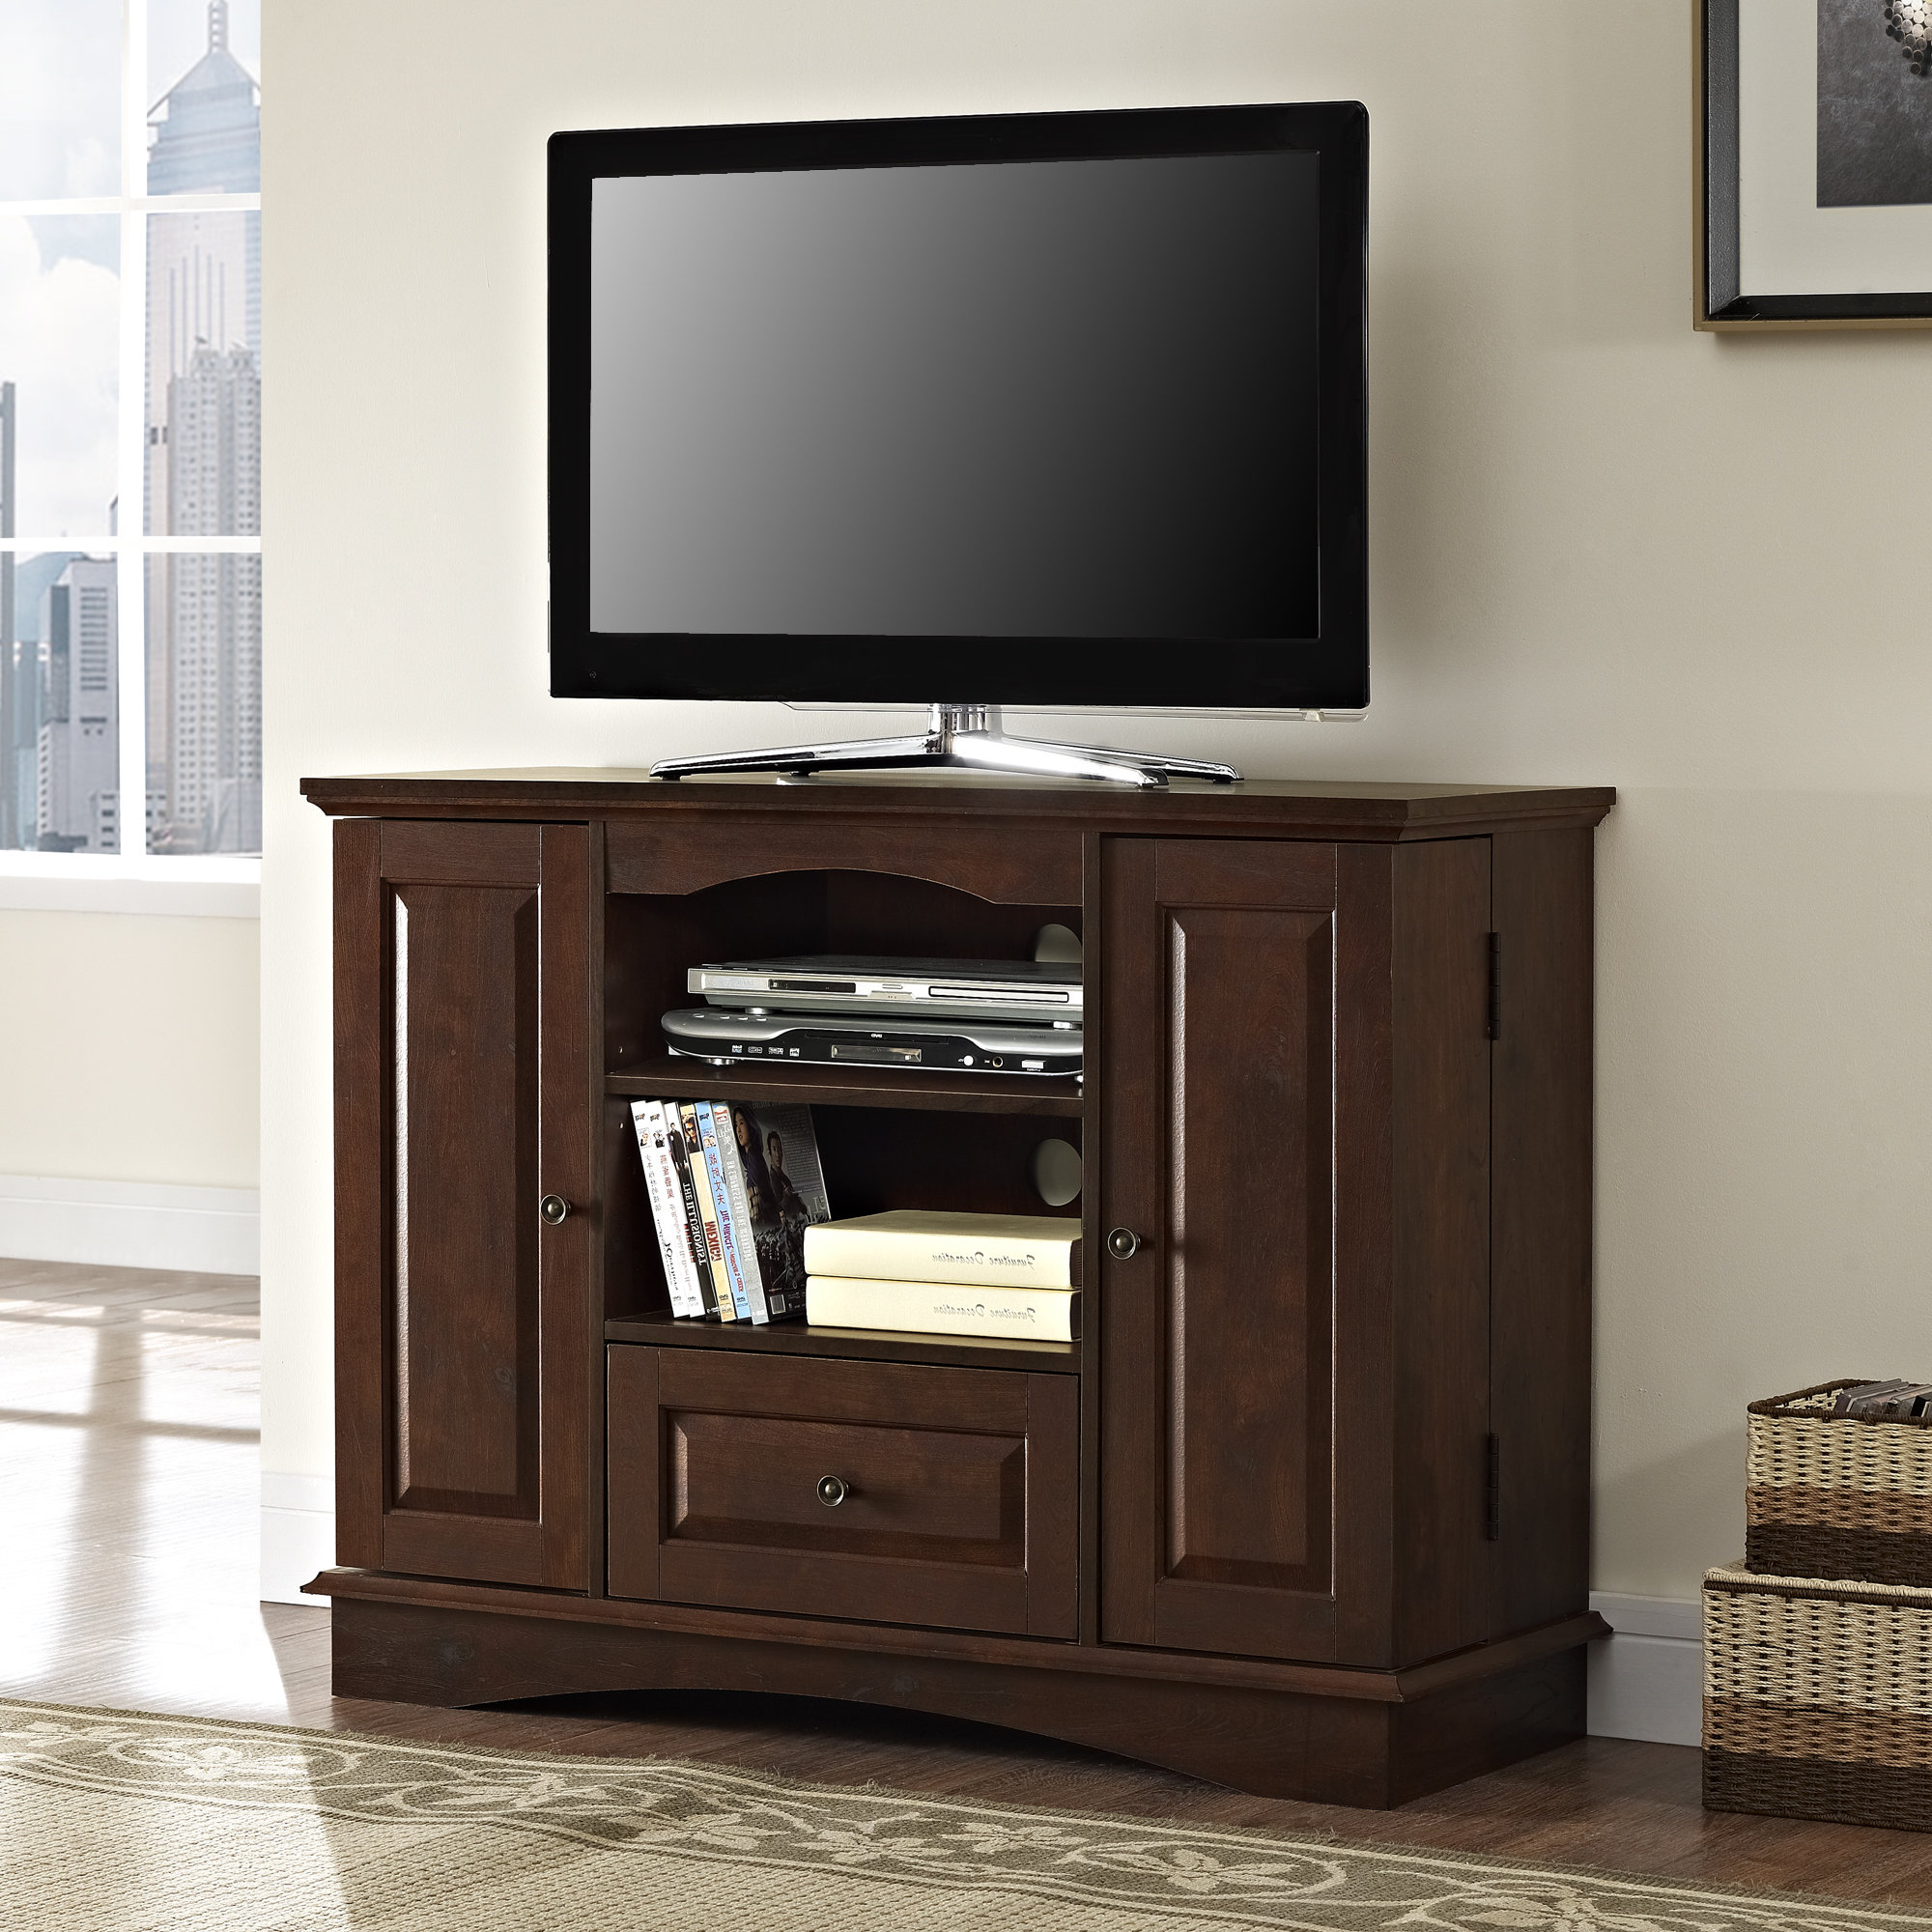 Tv Stands | Birch Lane For Walton 60 Inch Tv Stands (View 10 of 20)